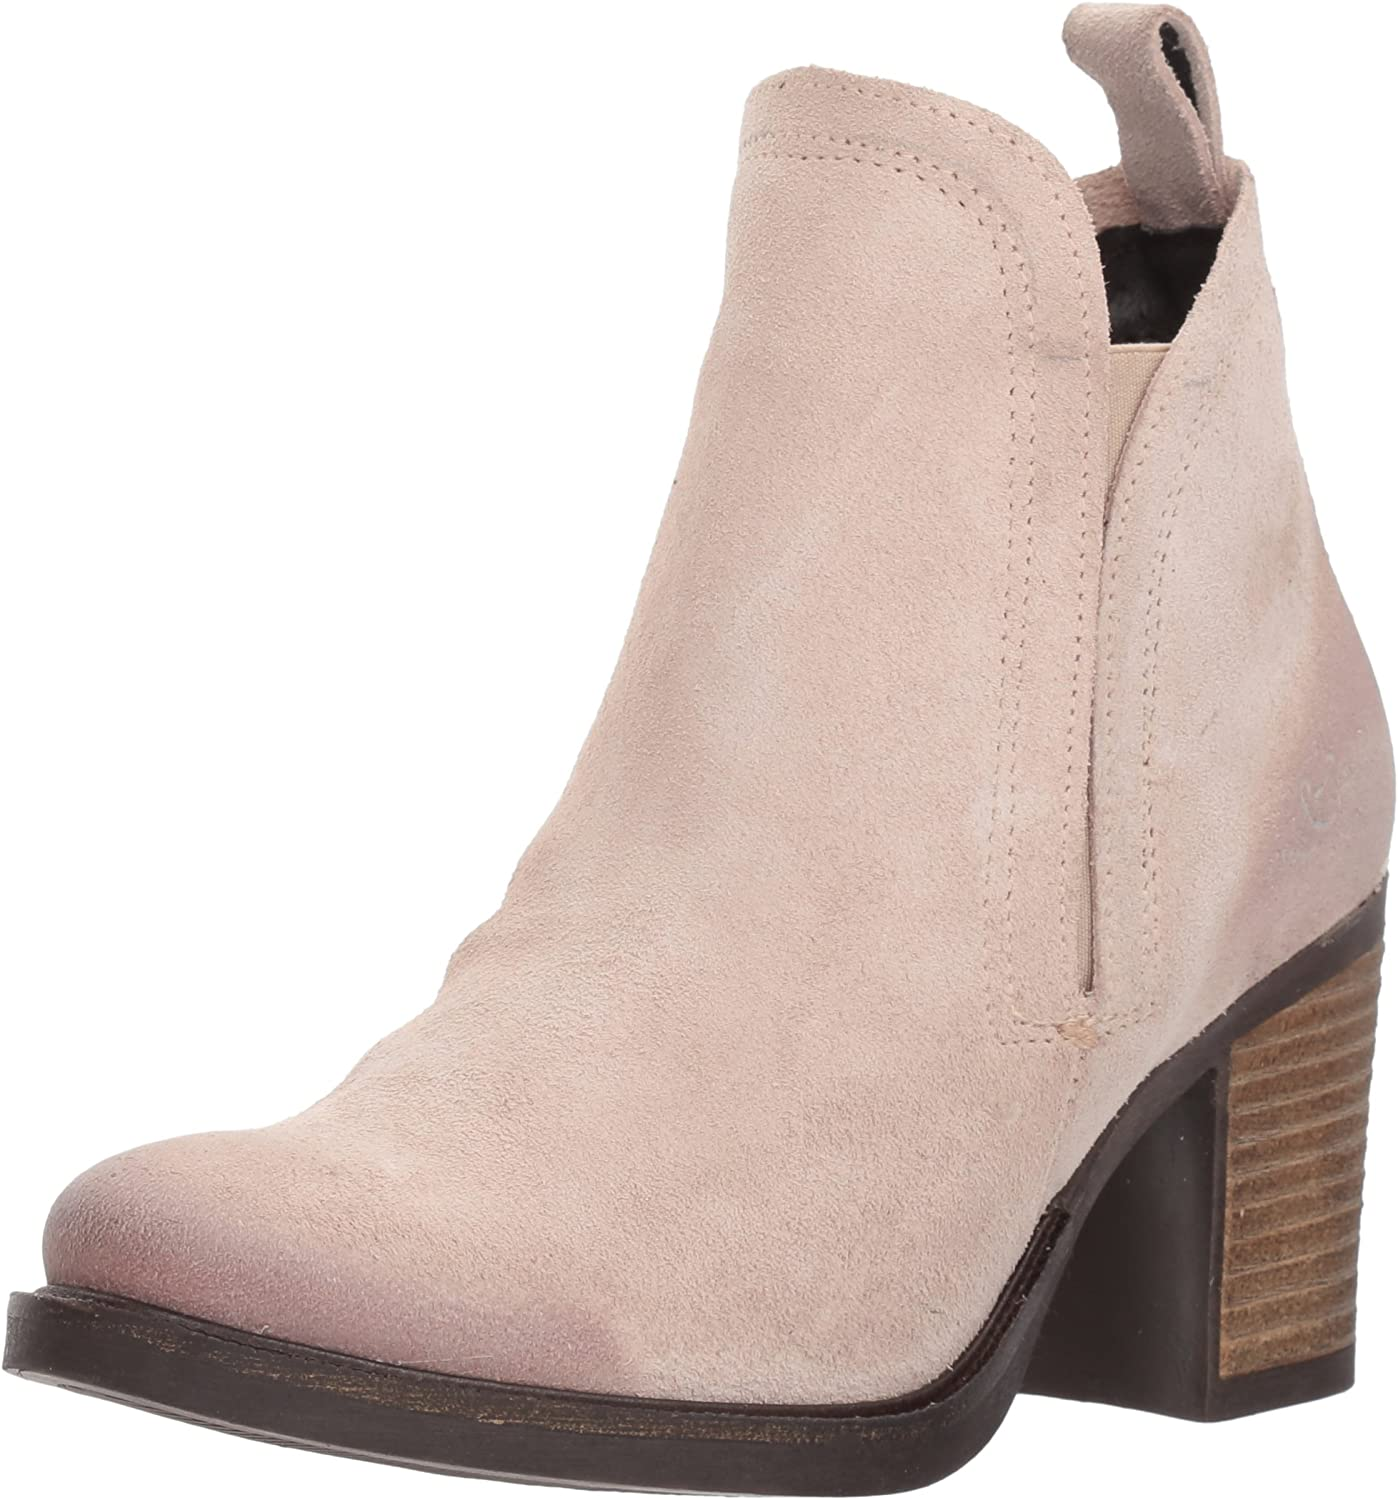 Bos. & Co. Womens Belfield Ankle Boot